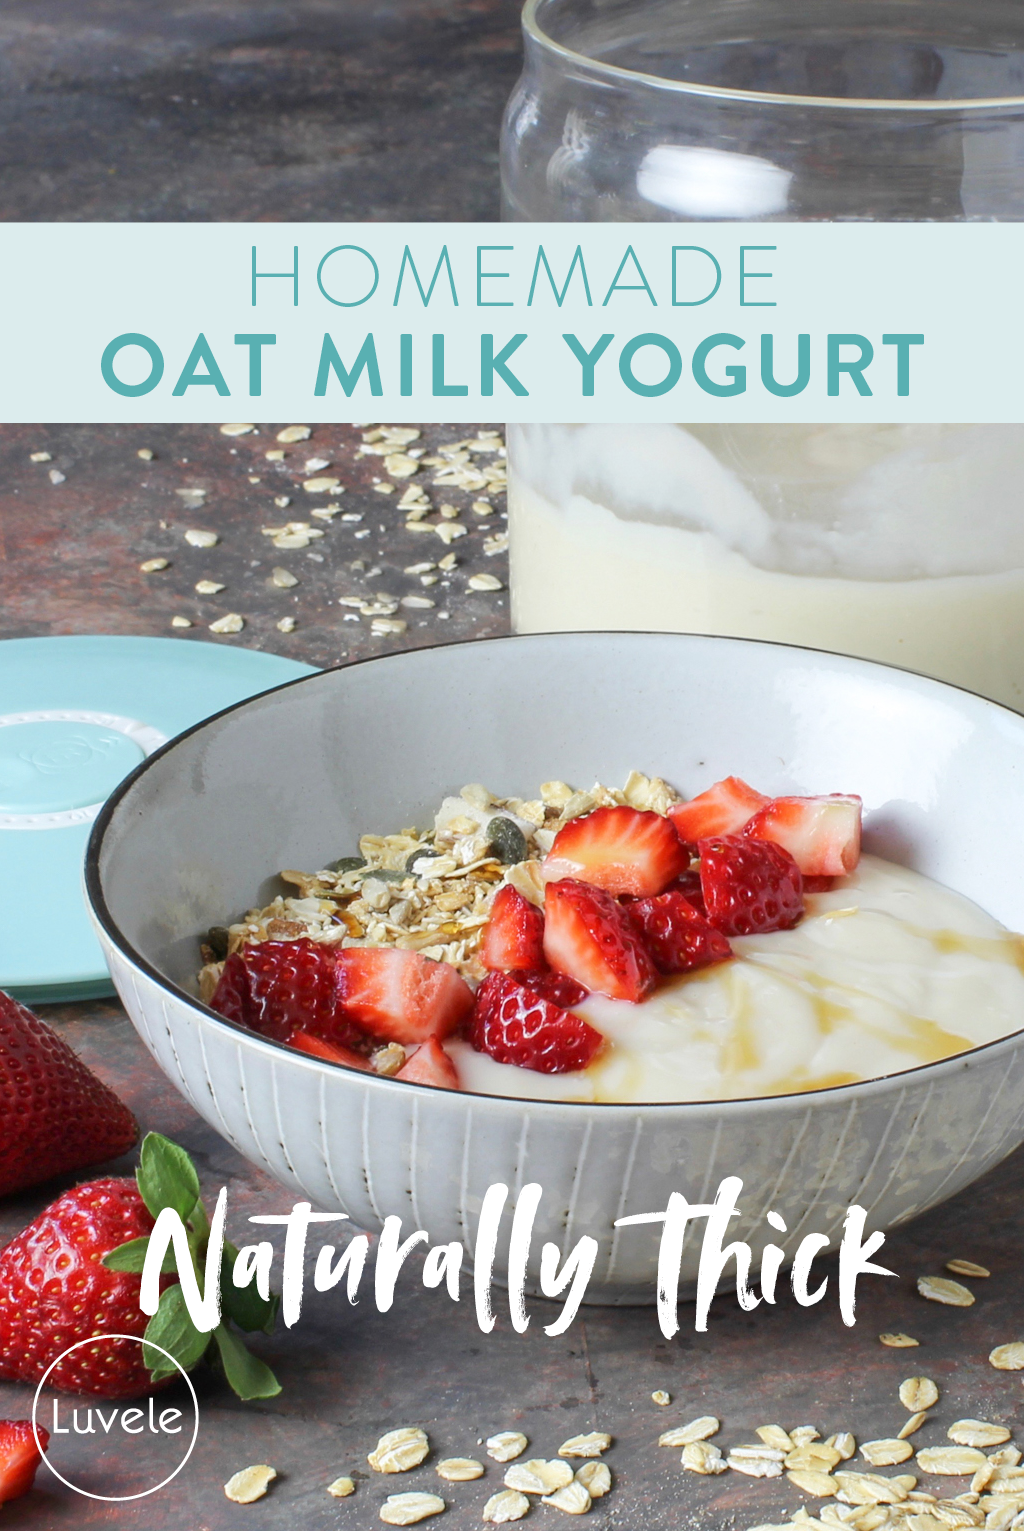 Oat milk yogurt